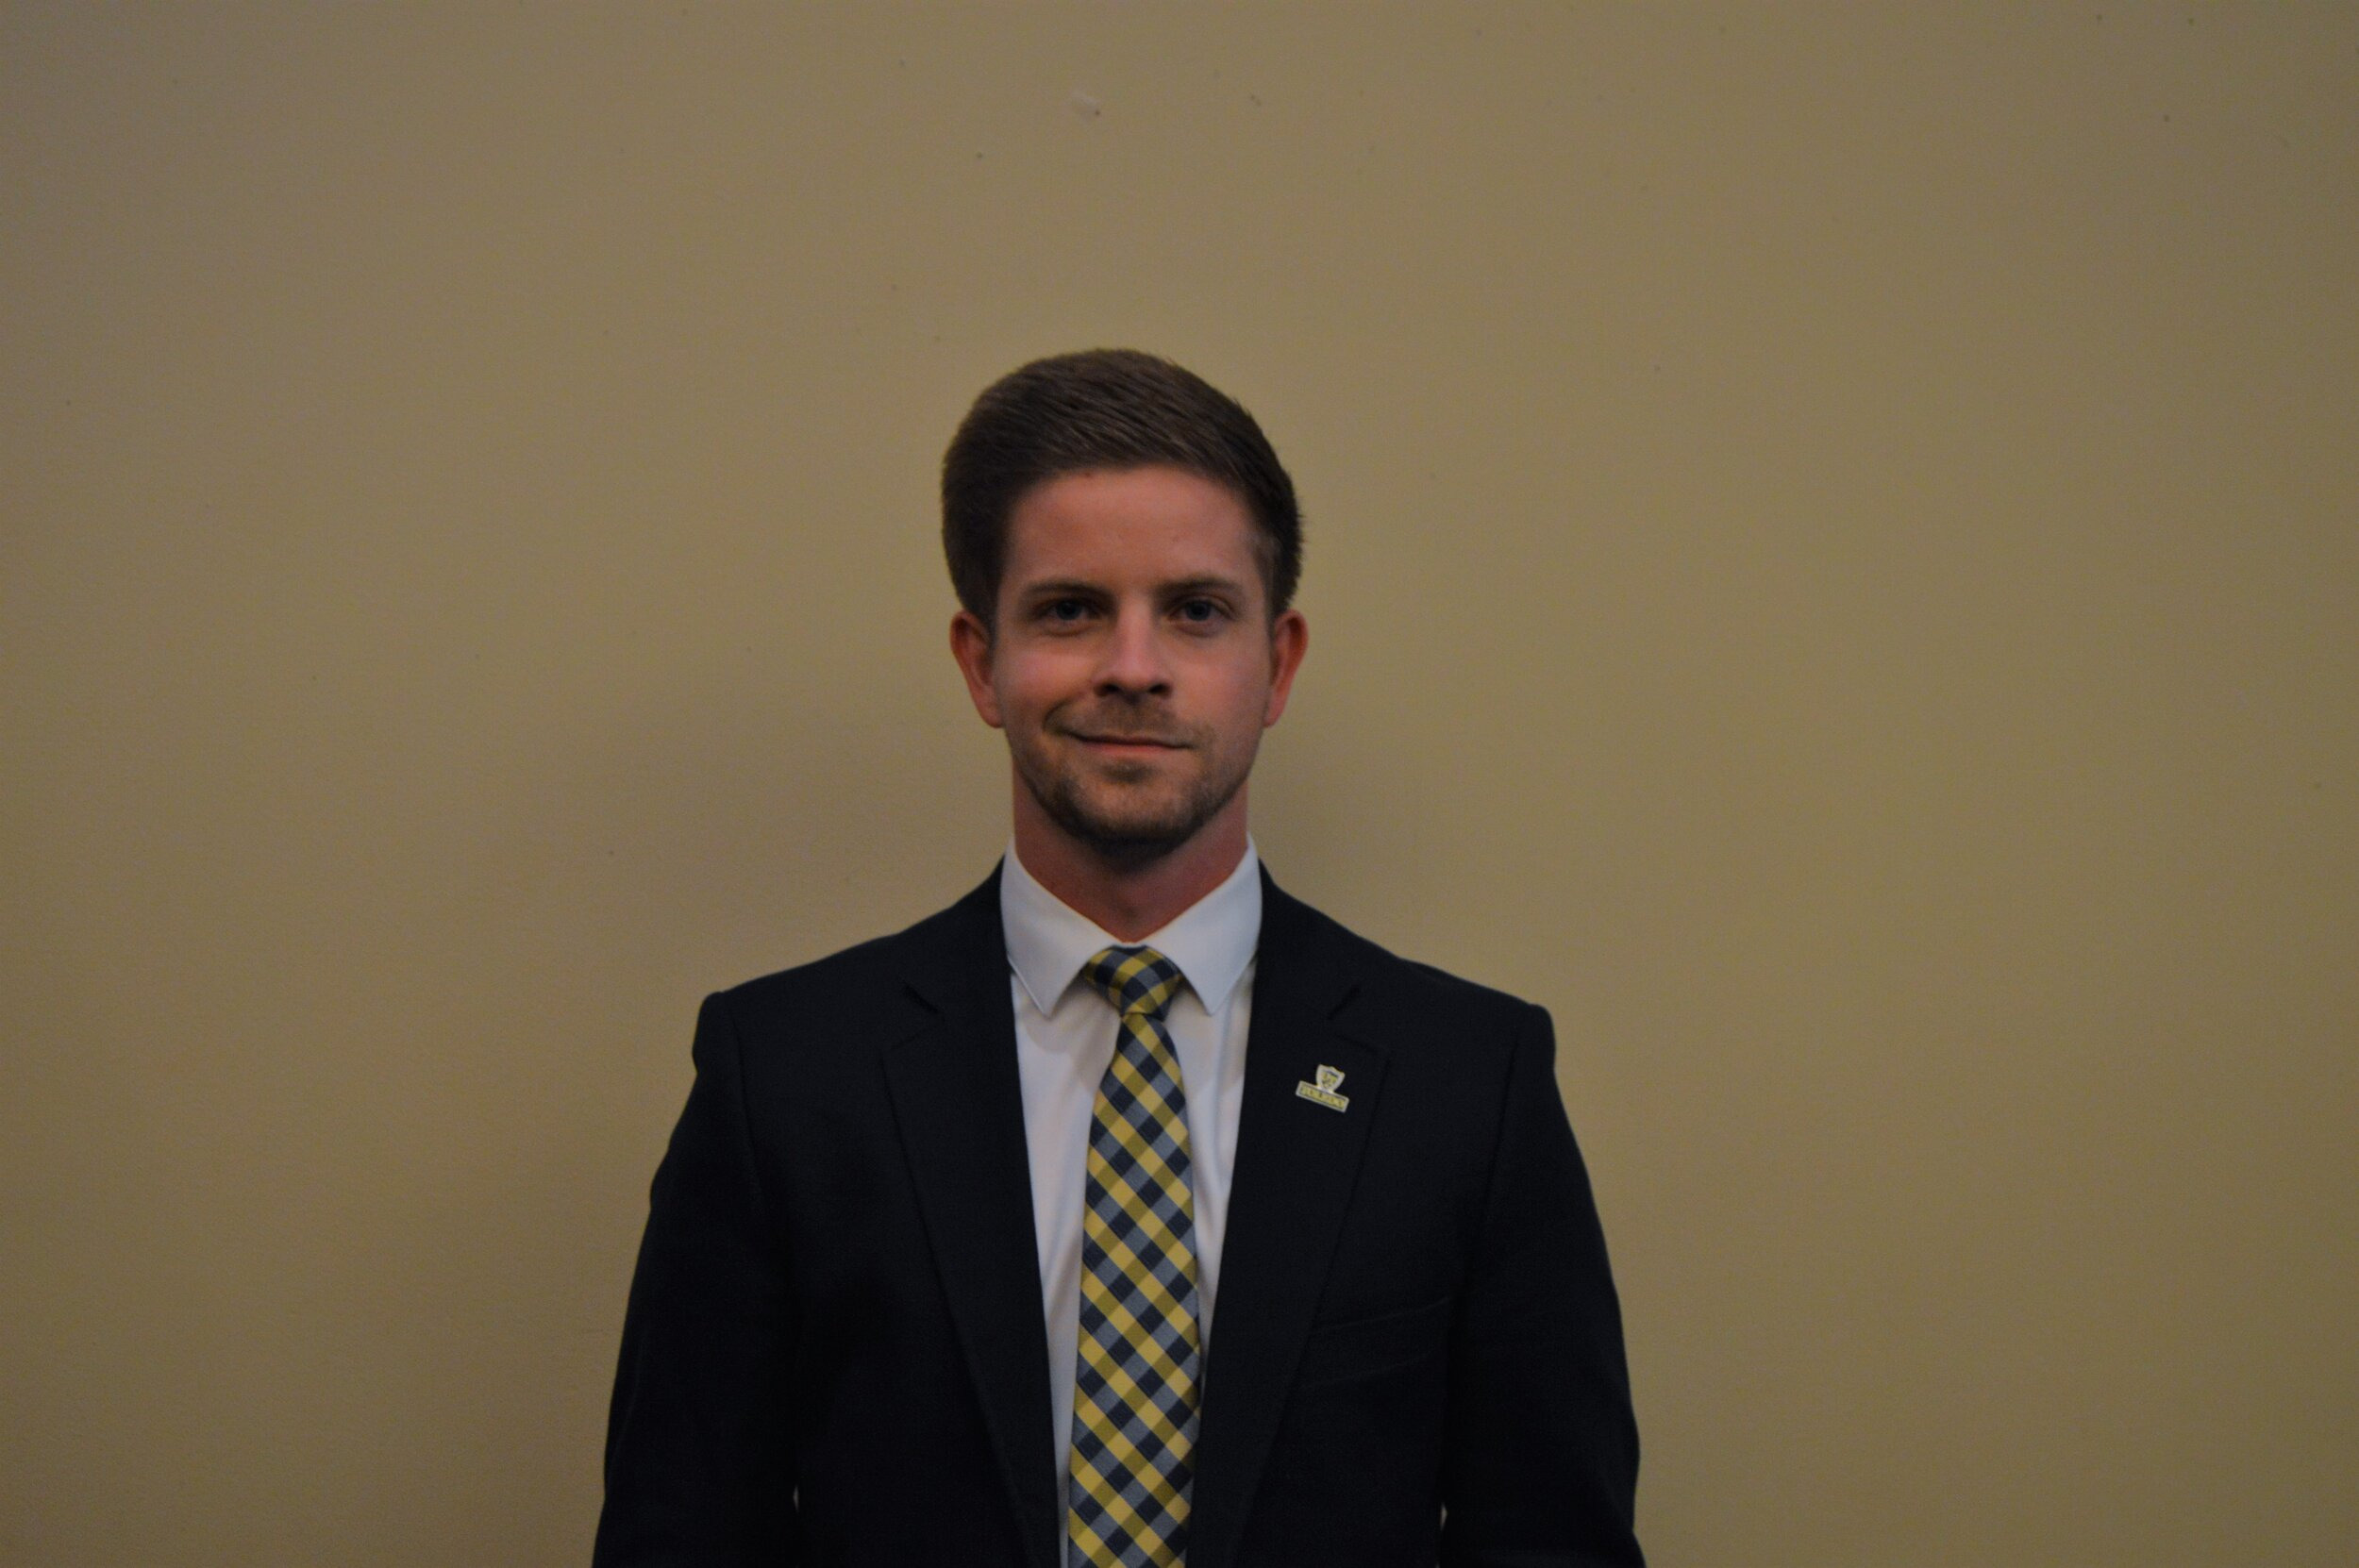 Dillon Hansen Horter - Class and Major: Criminal Justice and Political Science 20'UTSG Position: Elected SenatorEmail: Dillon.Horter@rockets.utoledo.eduBiography: I have a passion for serving and helping others achieve their dreams, goals, and desires. In my spare time, I enjoy flying airplanes, as I'm currently working forward getting my private pilot license. After college I hope to work in Law Enforcement, Politics, or College Athletics.UTSG Committees: Campus Culture, Internal Affairs, External AffairsCampus Involvement: Men's Basketball, Presidential Ambassadors, Levis Leadership, H2O, Political Science Student Association, Campus Tour GuideOn Campus Goals: I would love to improve dining options for students that satisfy dietary, health, and nutrition needs. I would also like to start a fund for parking that would eventually lead to expanded parking spaces. In addition, I would like to provide more opportunities for students to share their concerns with Student Government. Finally, I would like to start some kind of de-stress fest during finals week or would love to see Student Government provide study packs for students.Favorite Color: Tower Blue and Rocket Gold